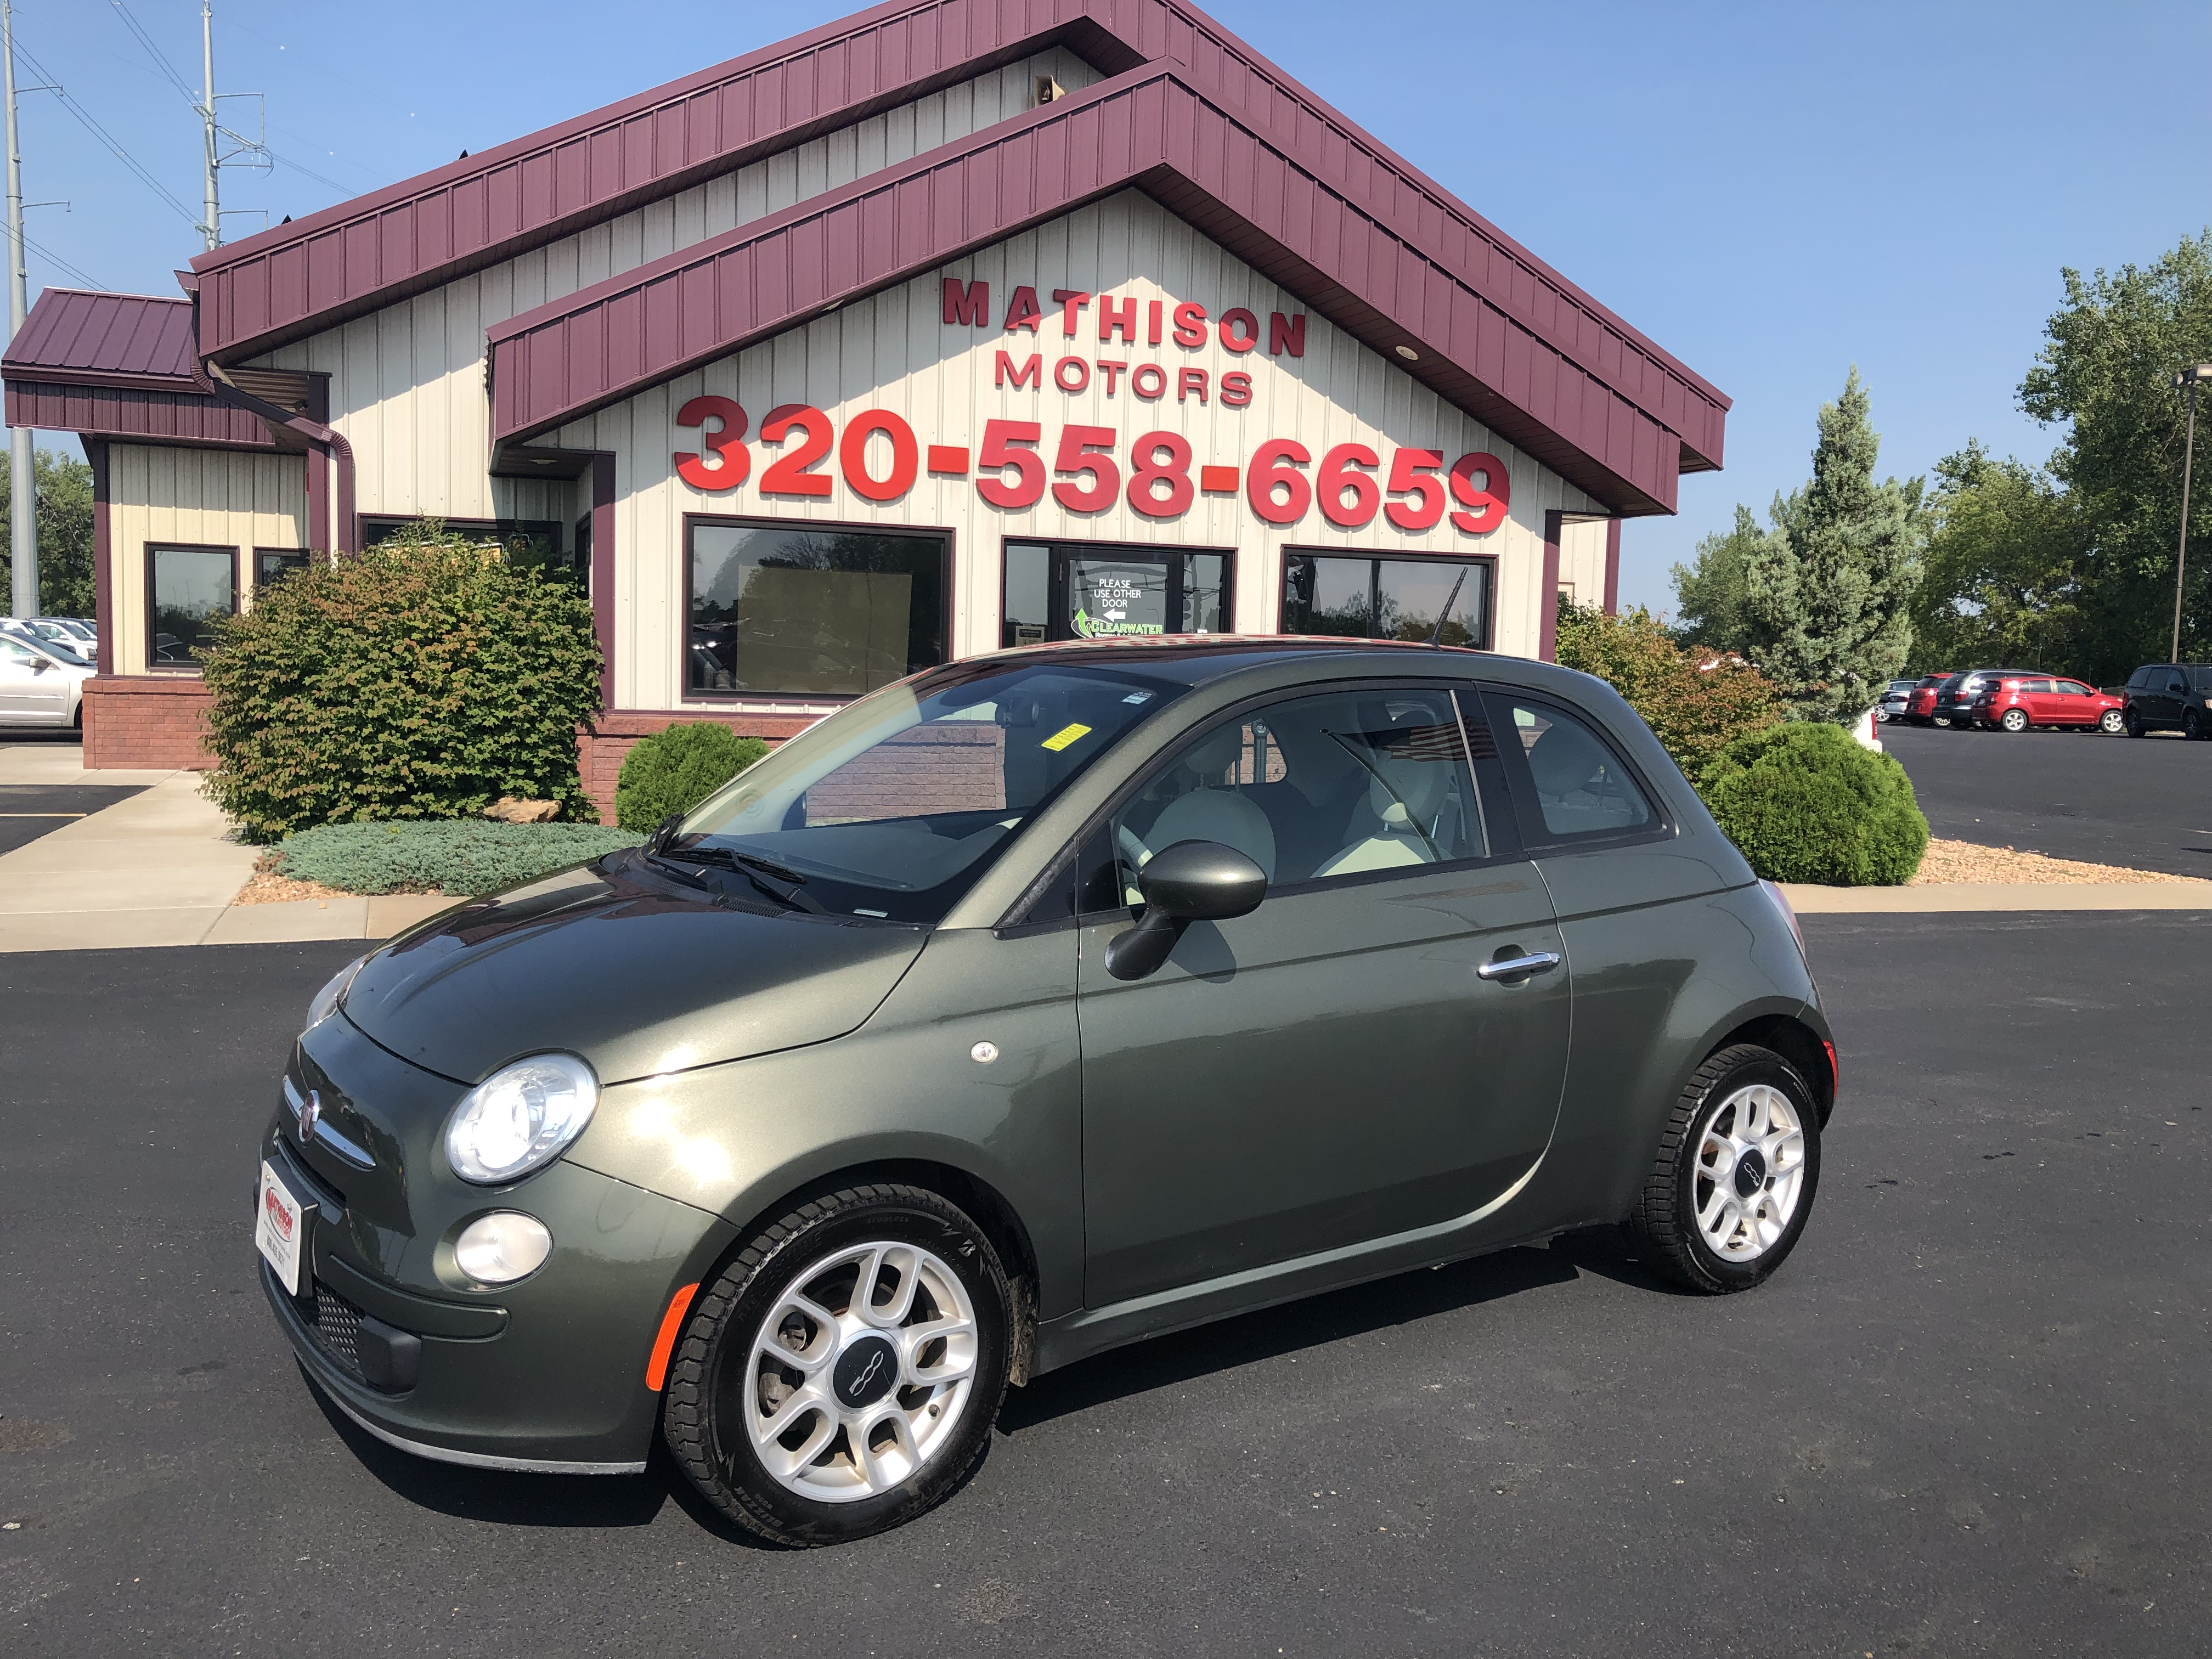 used vehicle - Coupe FIAT 500 2015